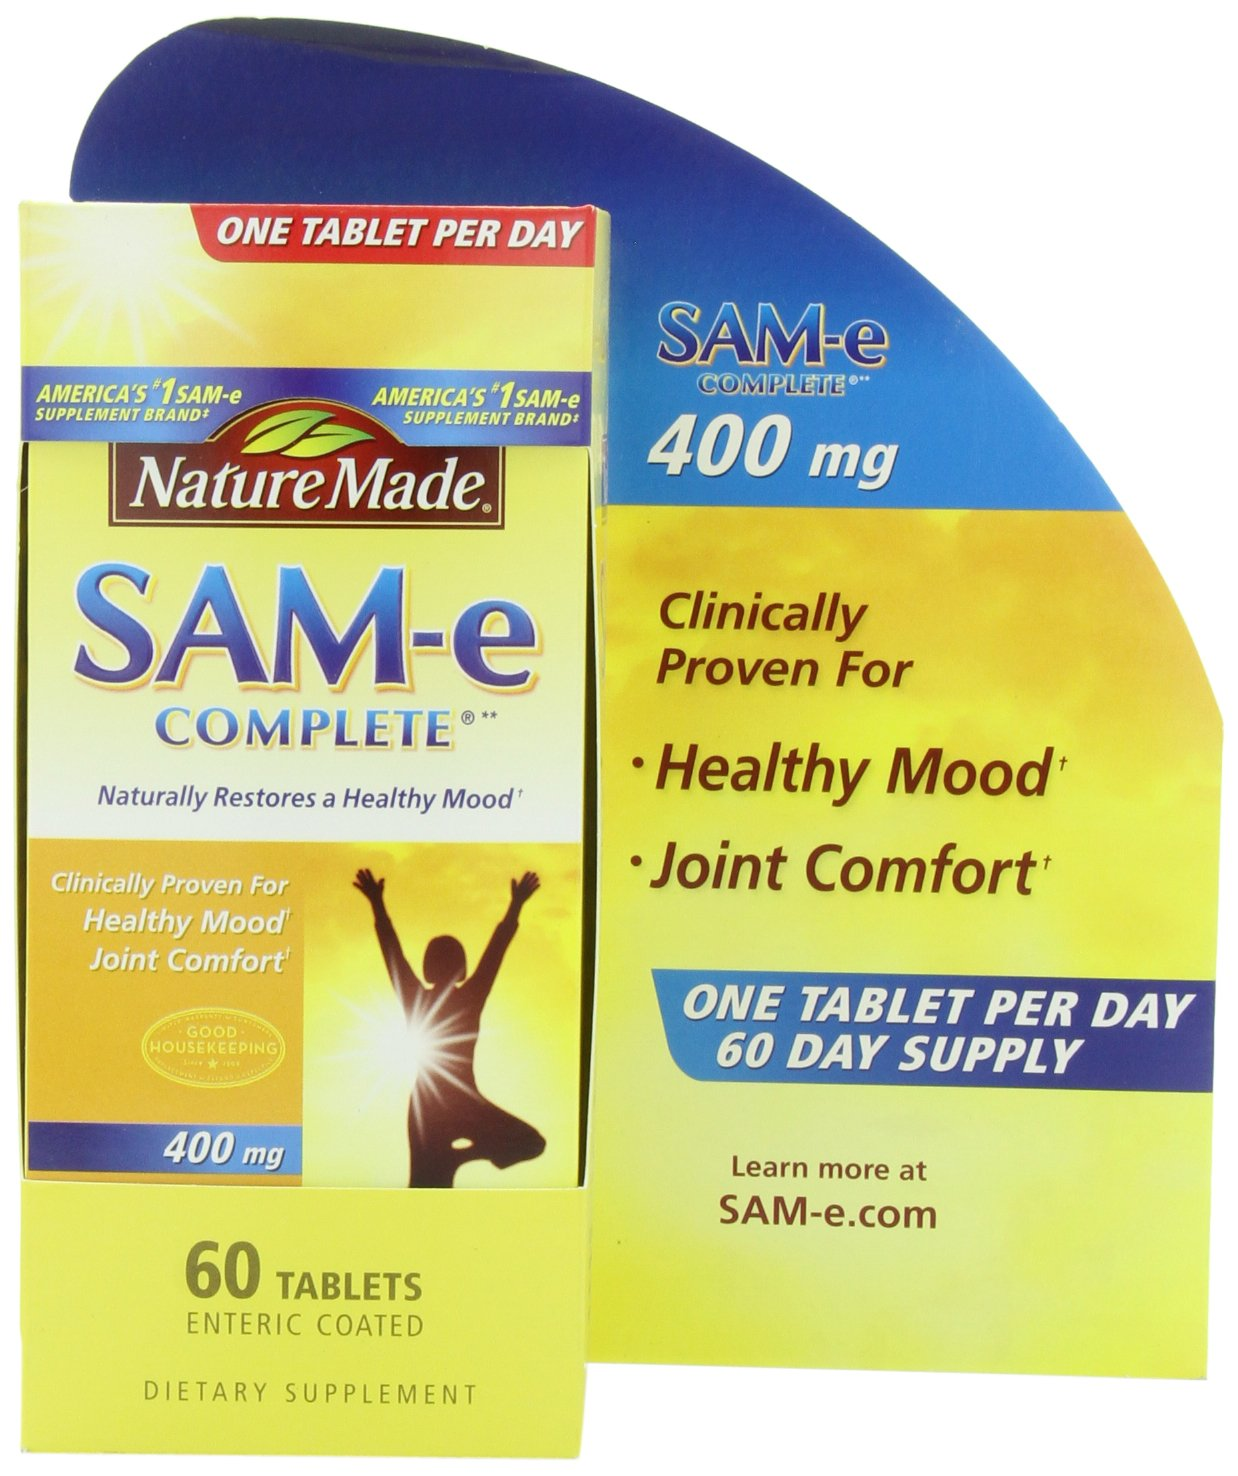 Nature Made SAM-e Complete 400 mg - 60 Enteric Coated Tablets